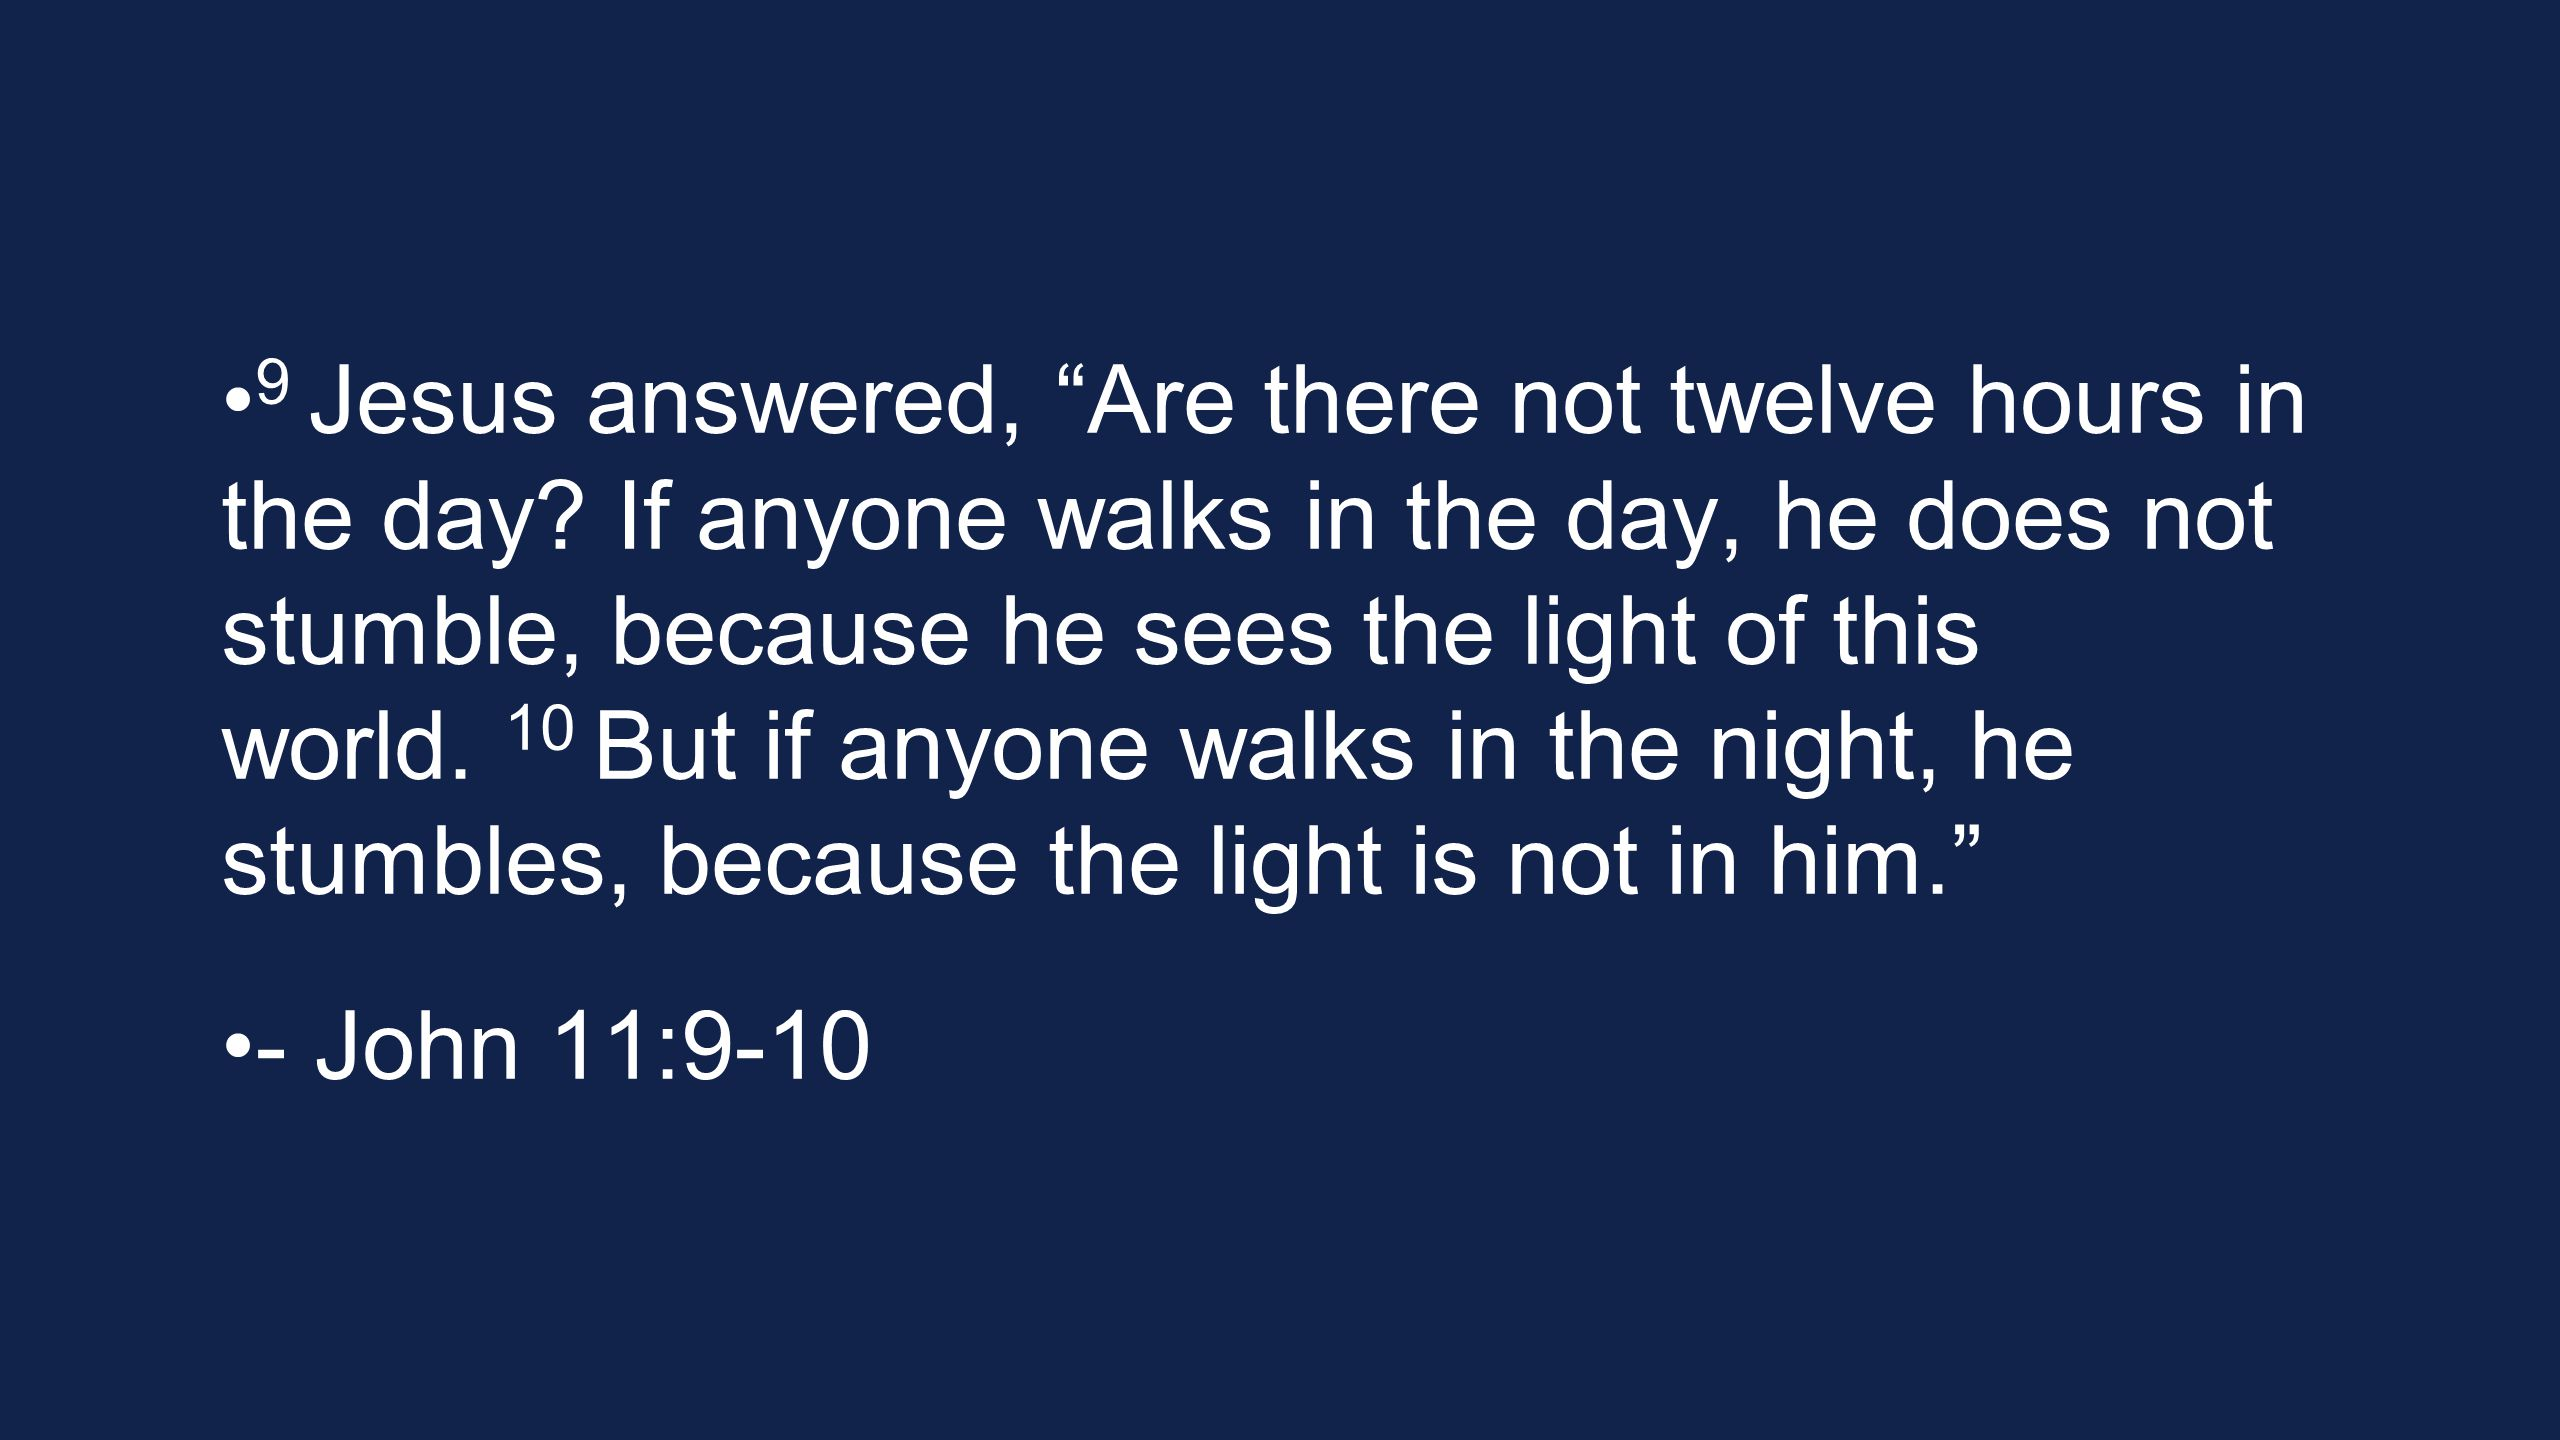 11 This He said, and after that He said to them, Our friend Lazarus has fallen asleep; but I go, so that I may awaken him out of sleep. 12 The disciples then said to Him, Lord, if he has fallen asleep, he will recover. - John 11:11-12